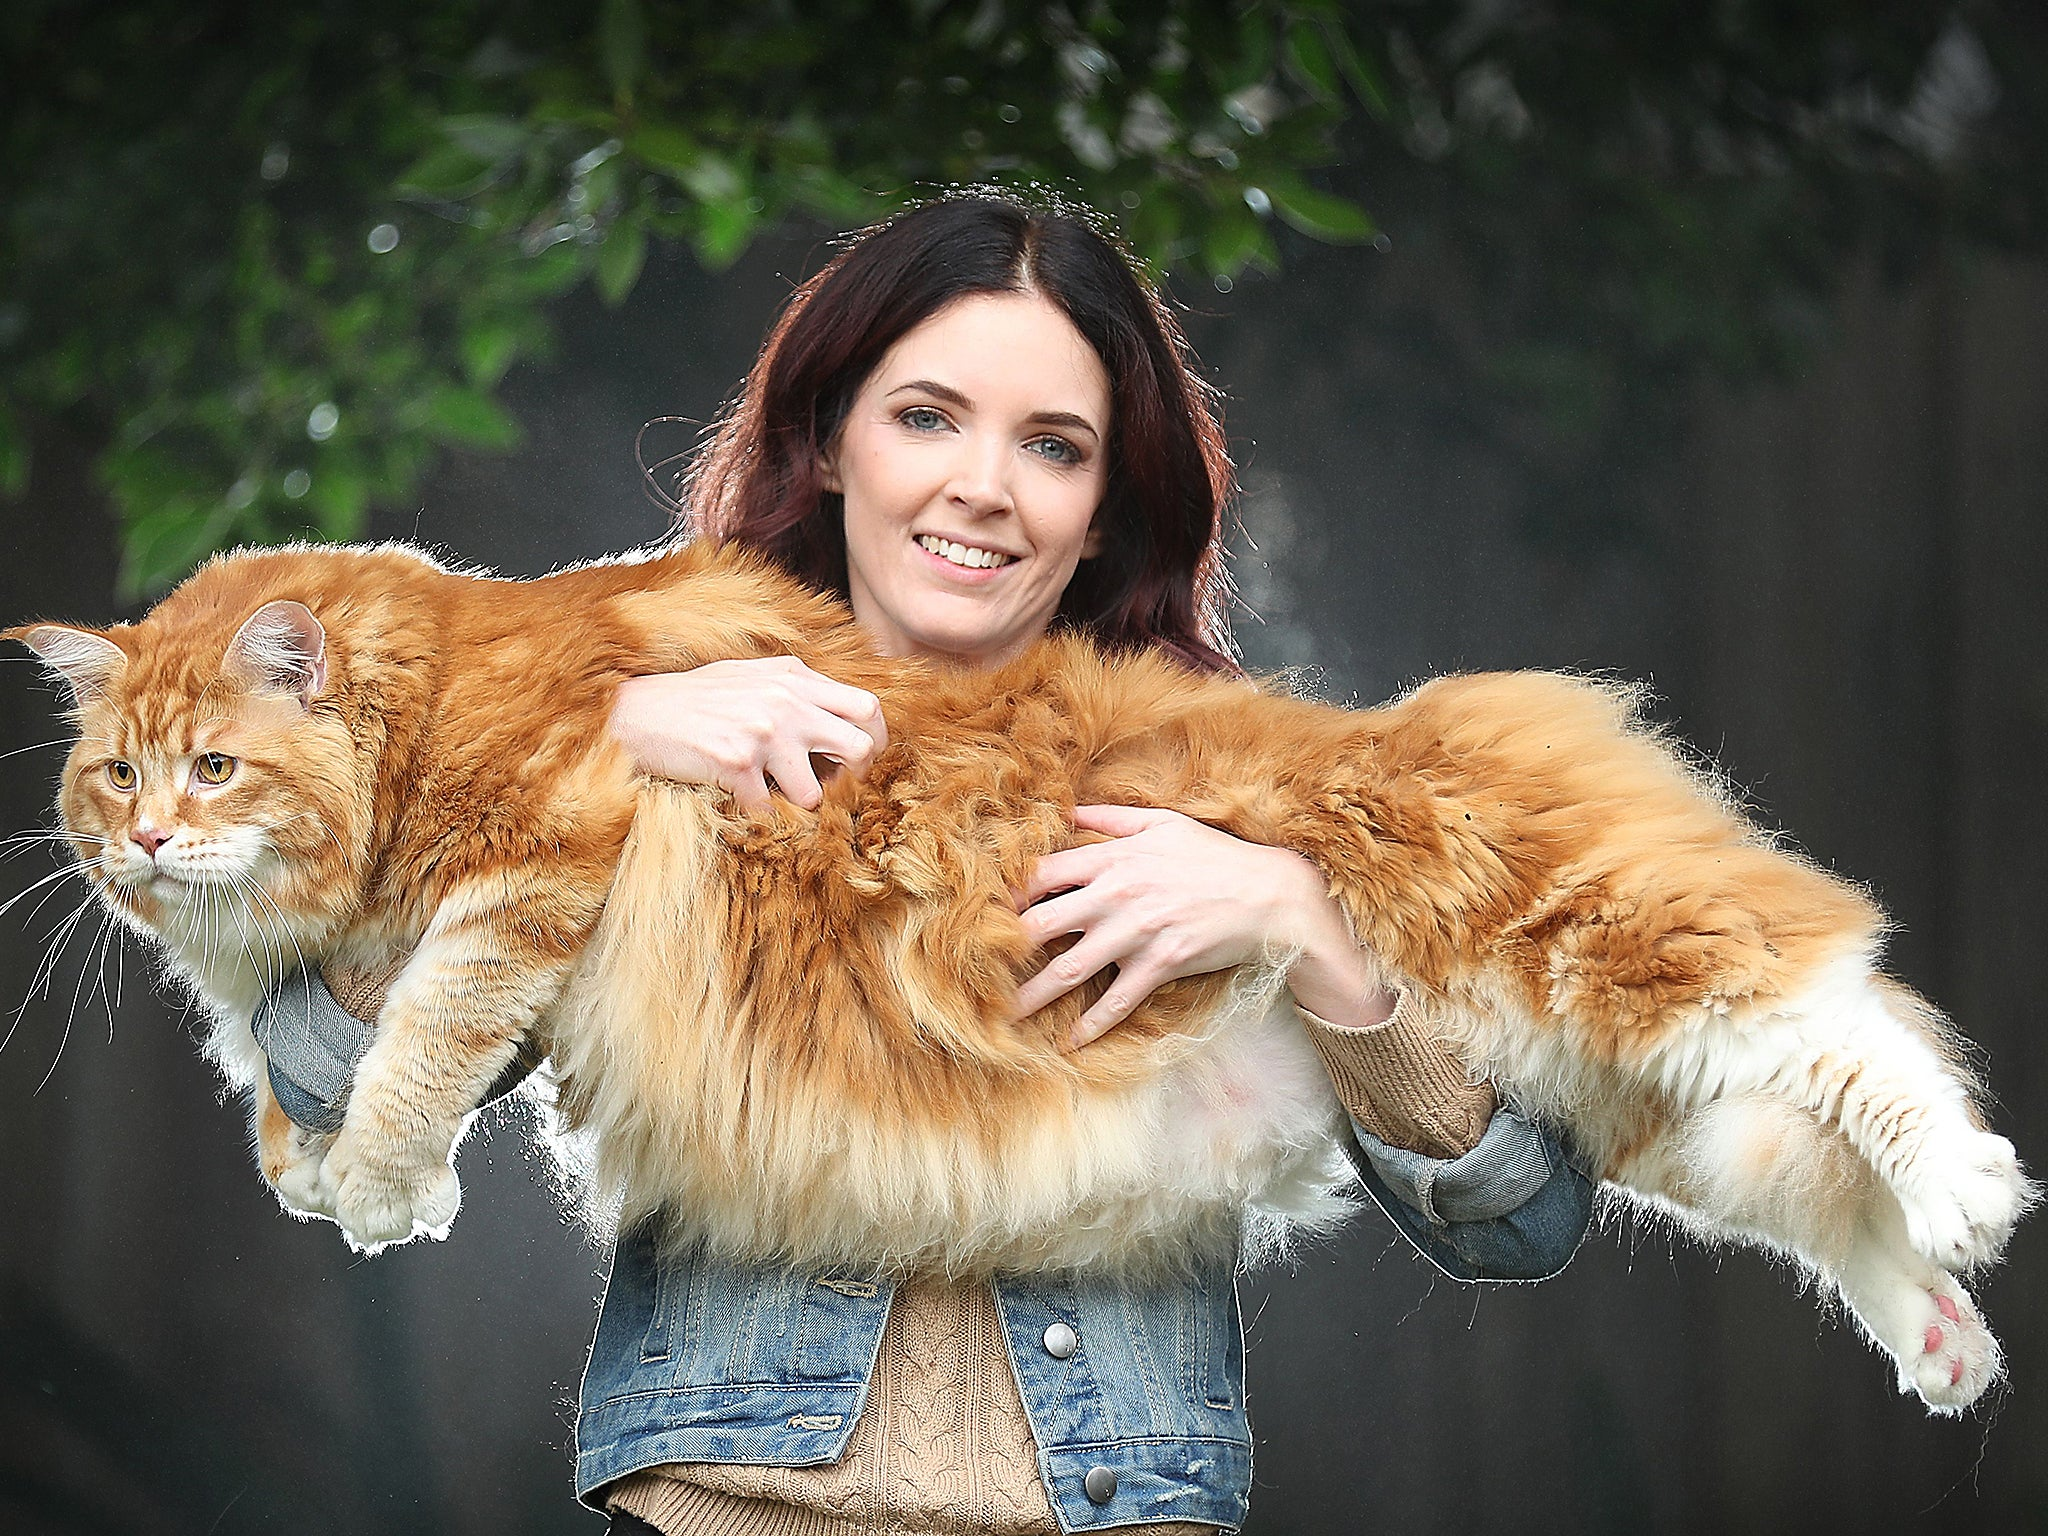 worlds longest cat in bid for record recognition the independent - Biggest Cat In The World Guinness 2017